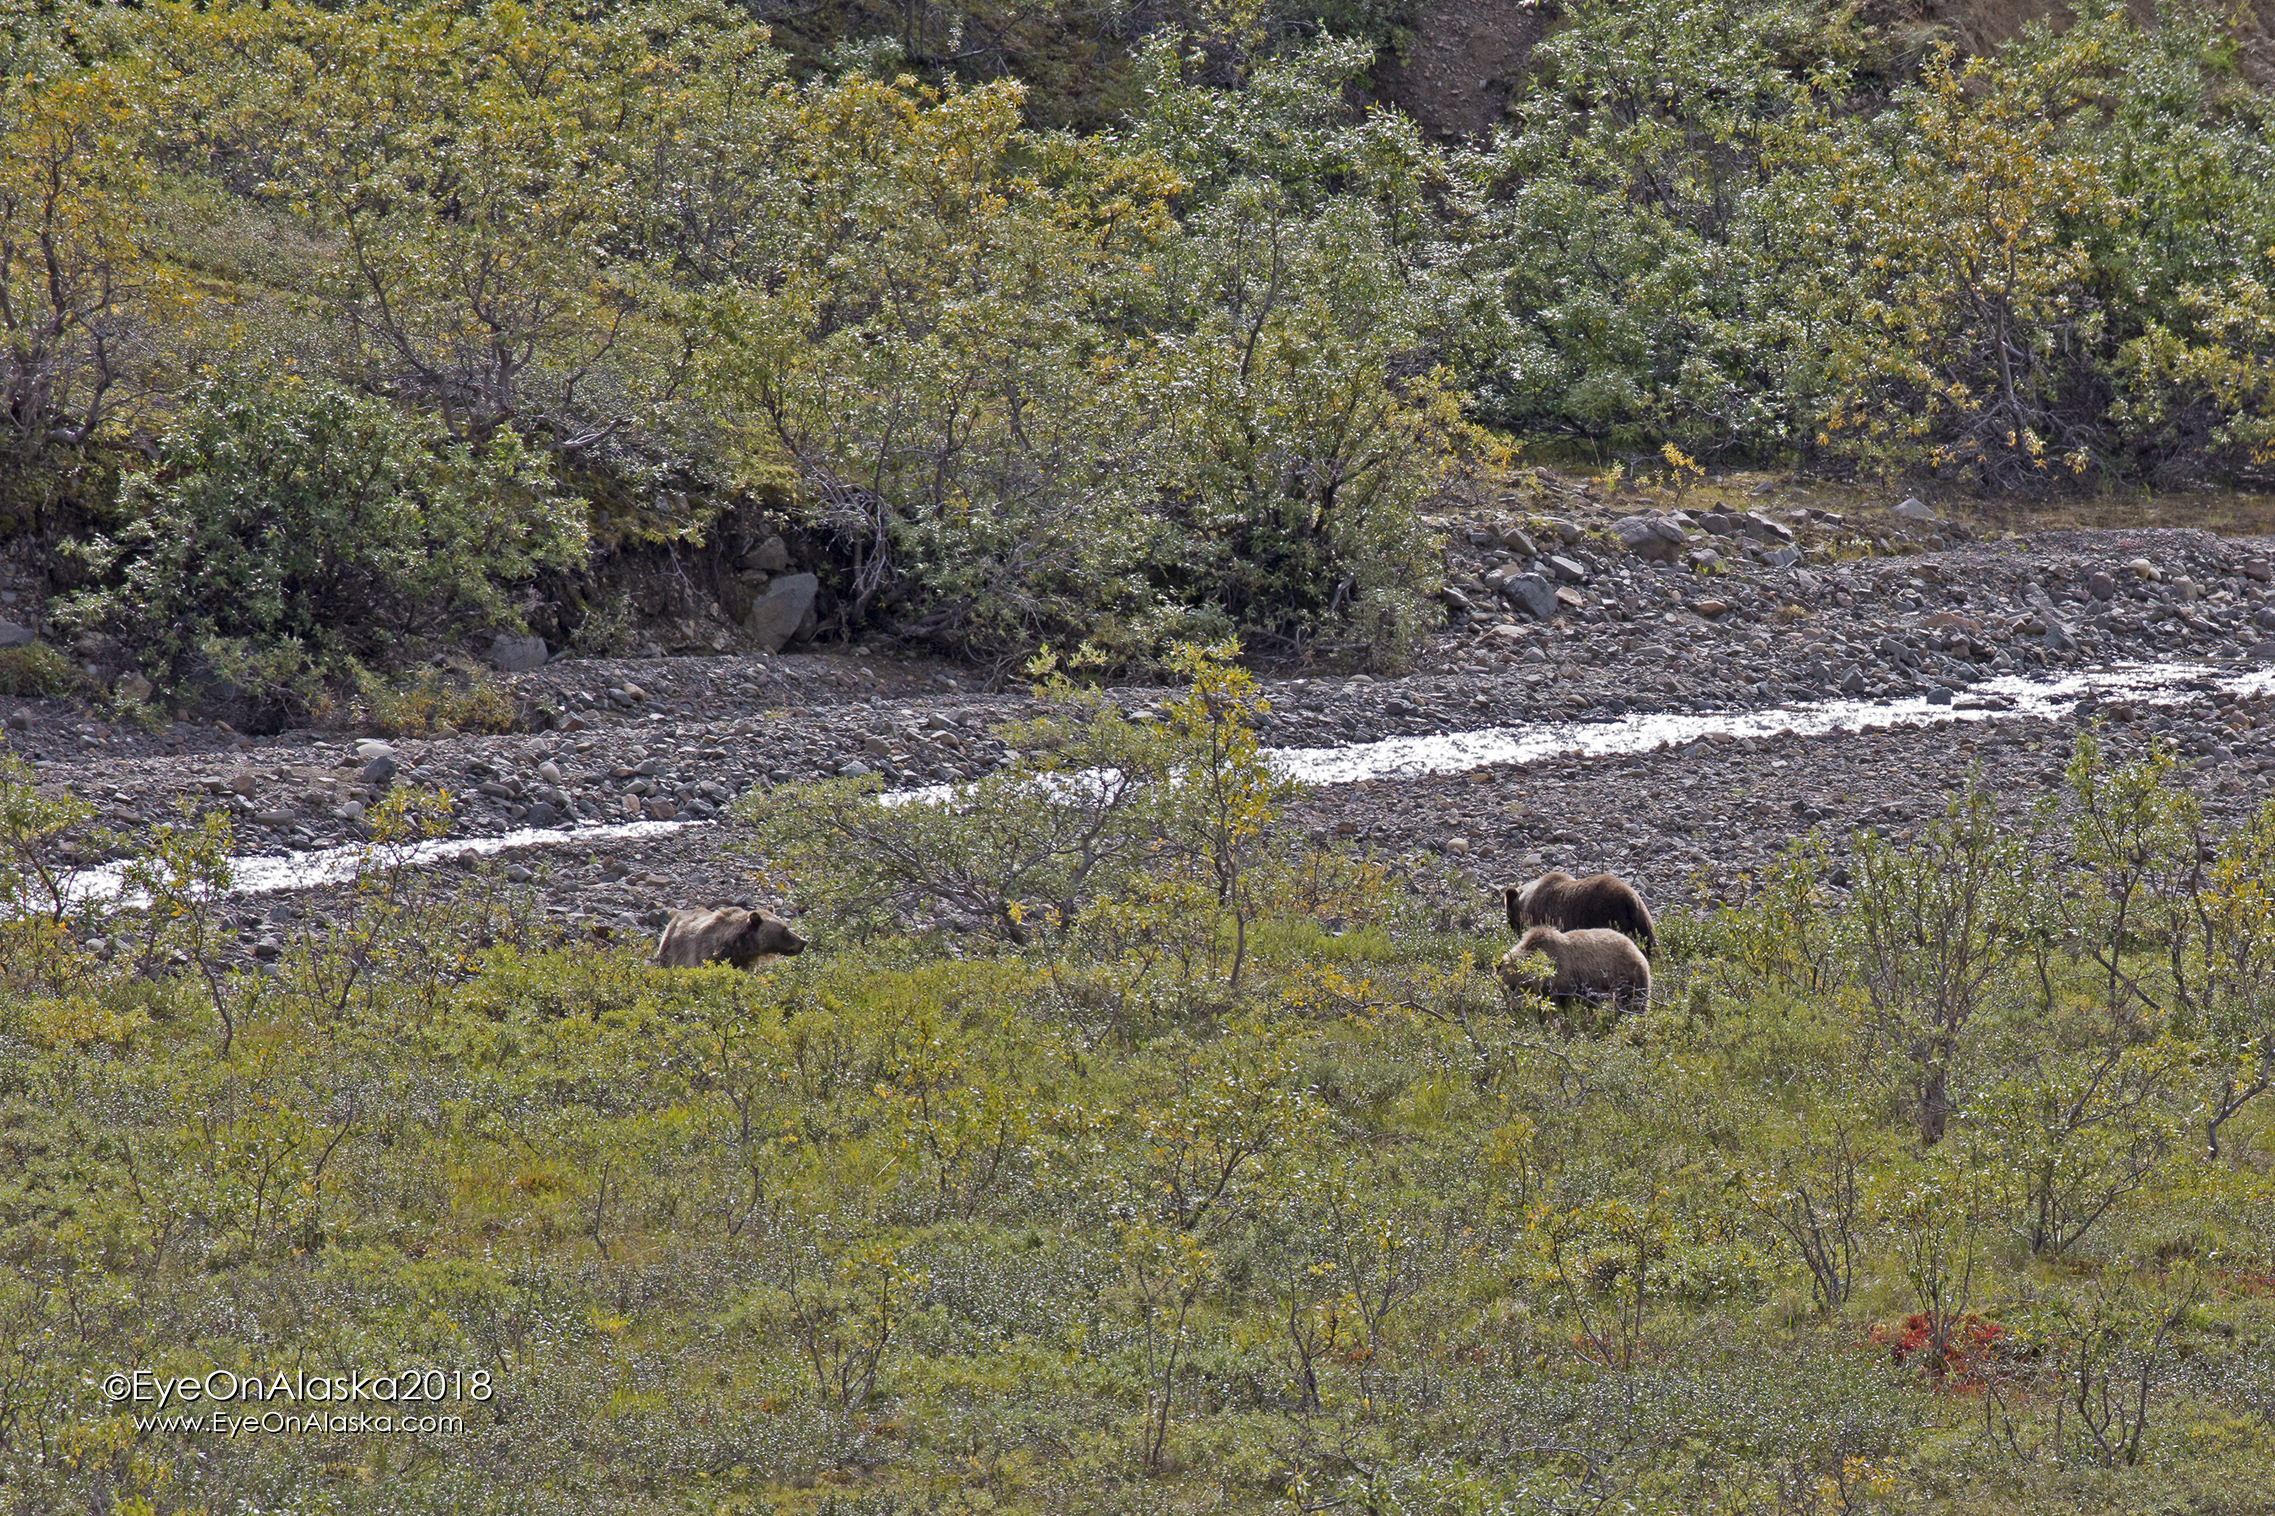 Sow with 2 cubs in Highway Pass.  They look like possibly spring cubs, but they're big.  The one cub has the distinctive blond collar around the shoulders.